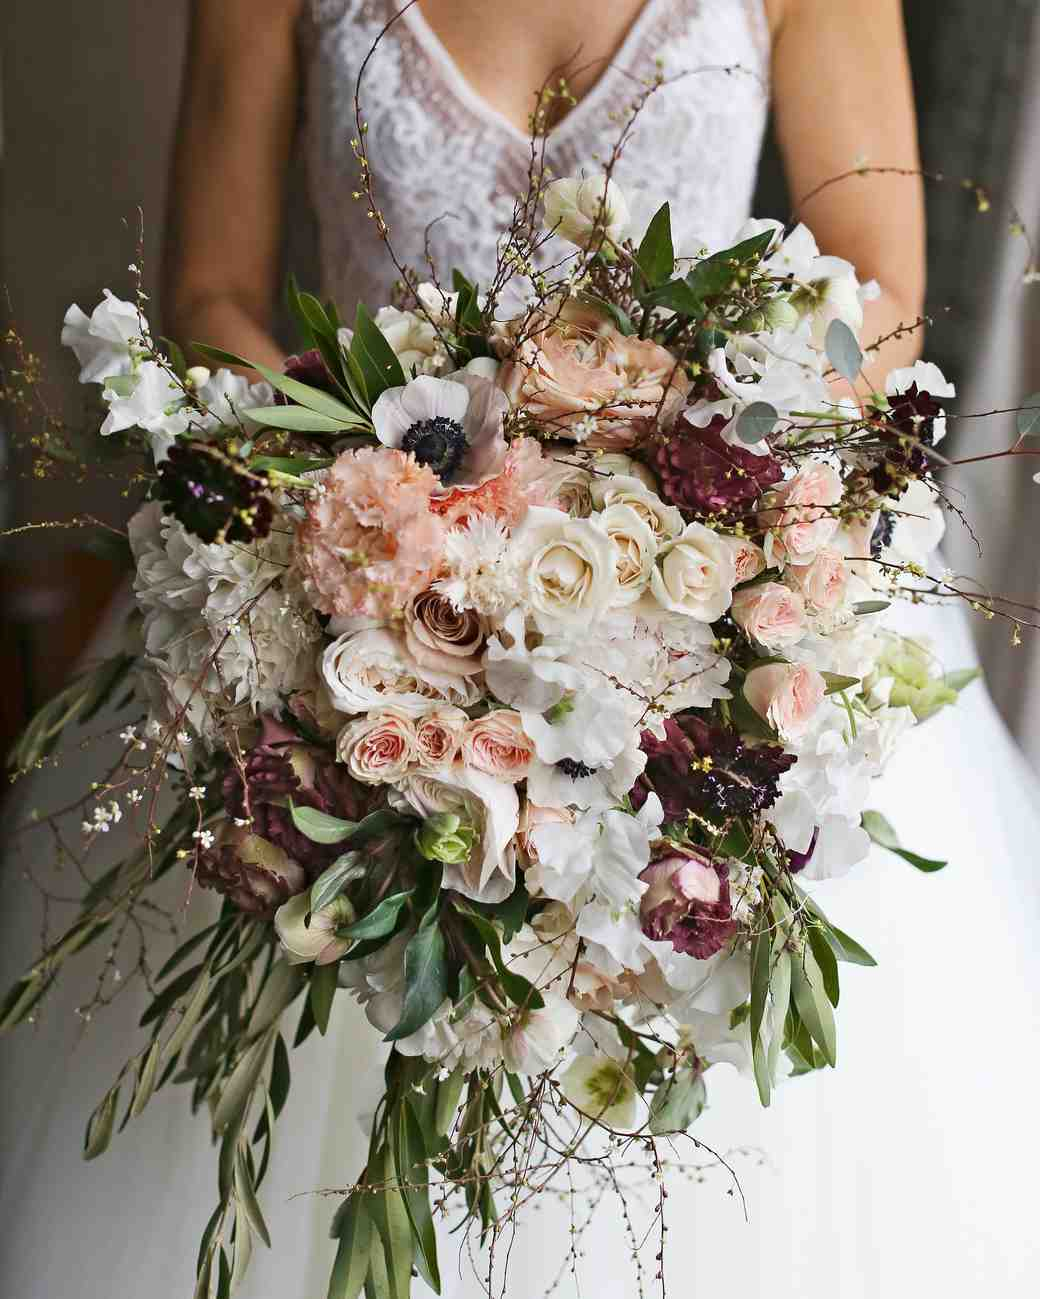 Flowers Wedding Ideas: 32 Chic Cascading Wedding Bouquets